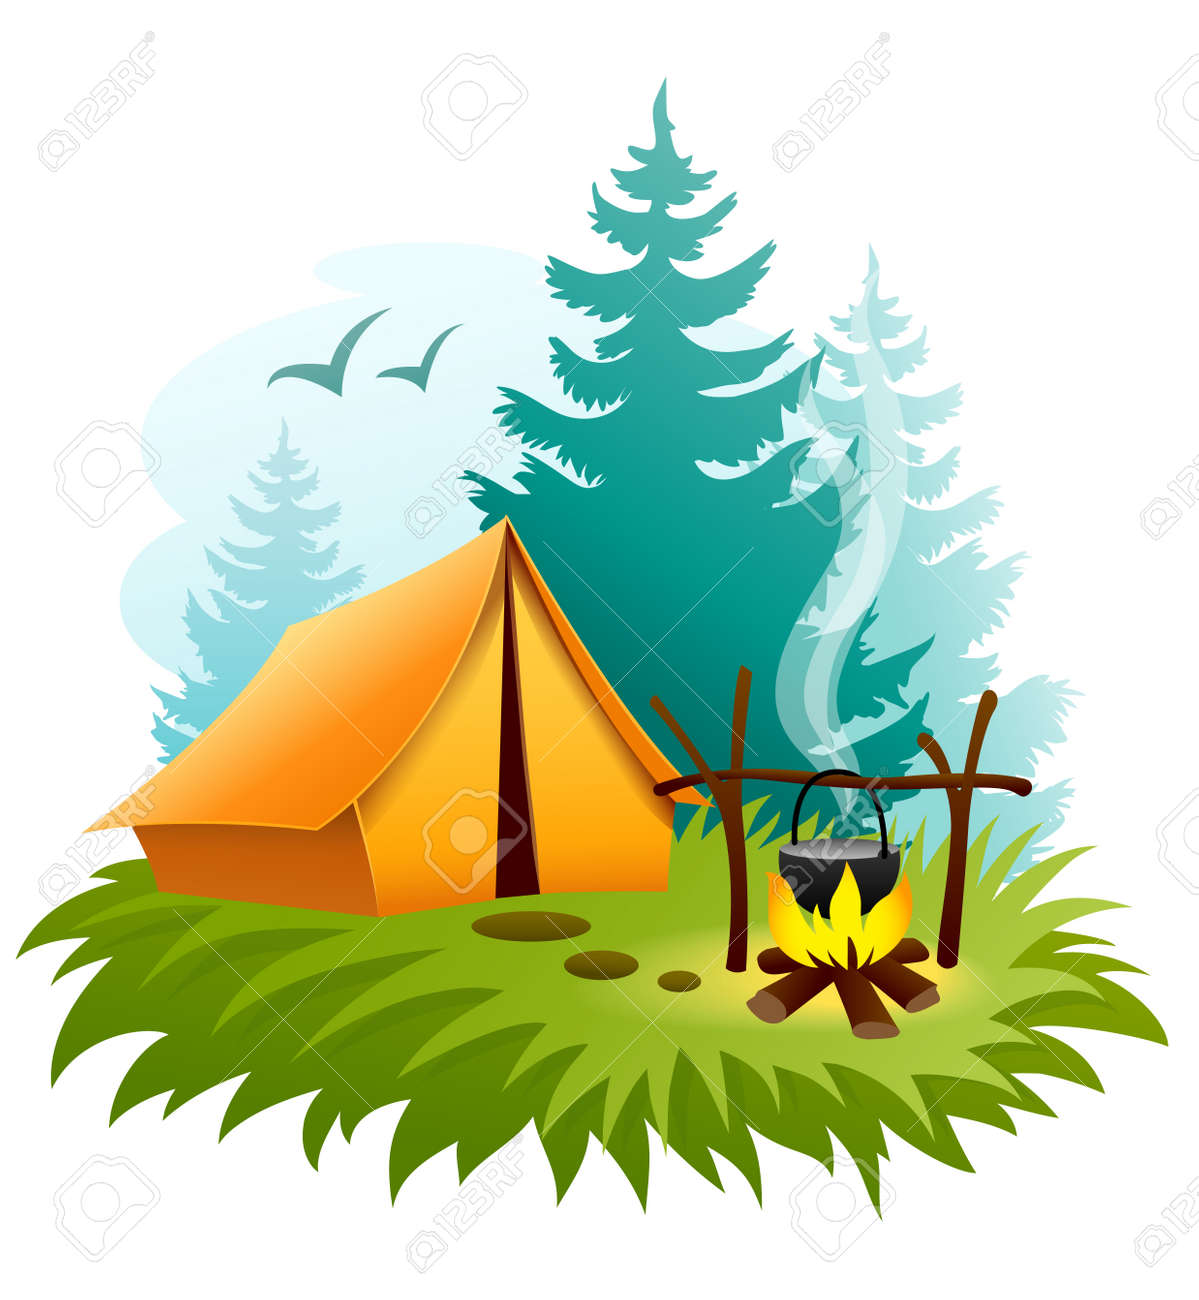 14,831 Camping Tent Stock Vector Illustration And Royalty Free ...